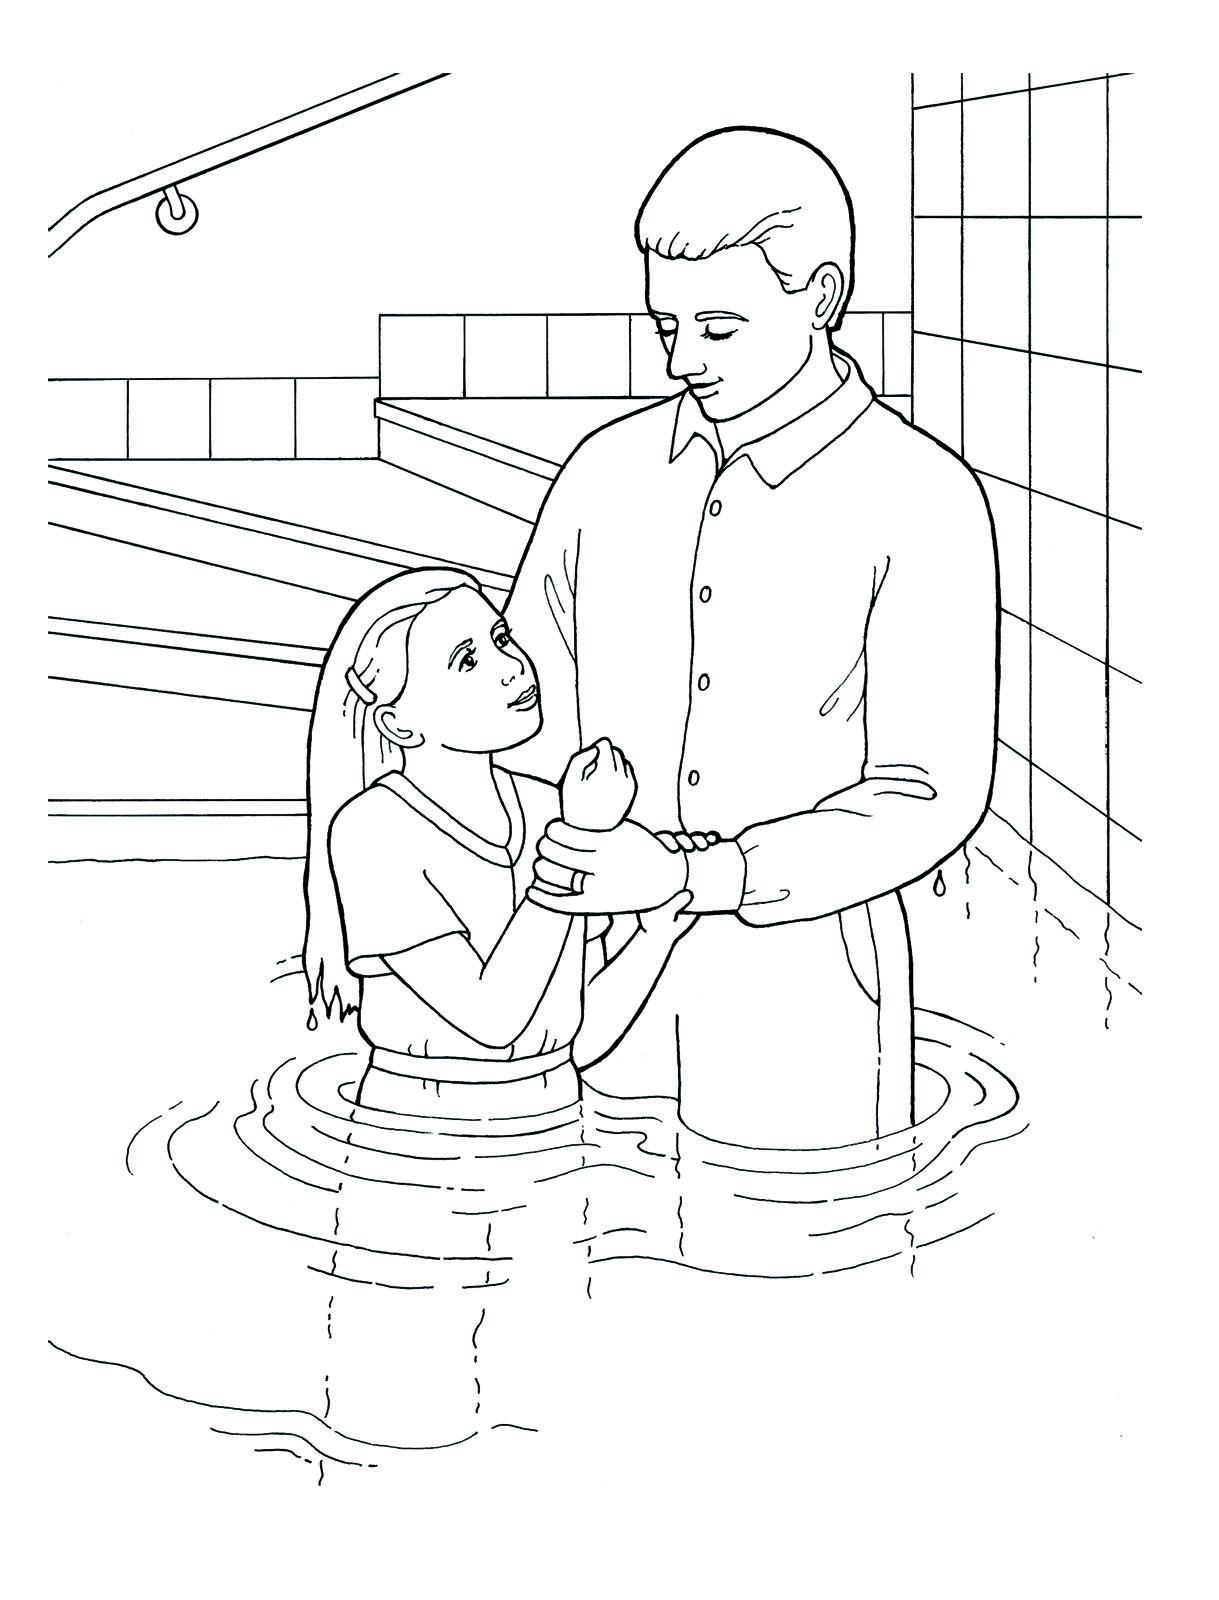 Awesome John the Baptist Coloring Pages Printable with Baptism and ...